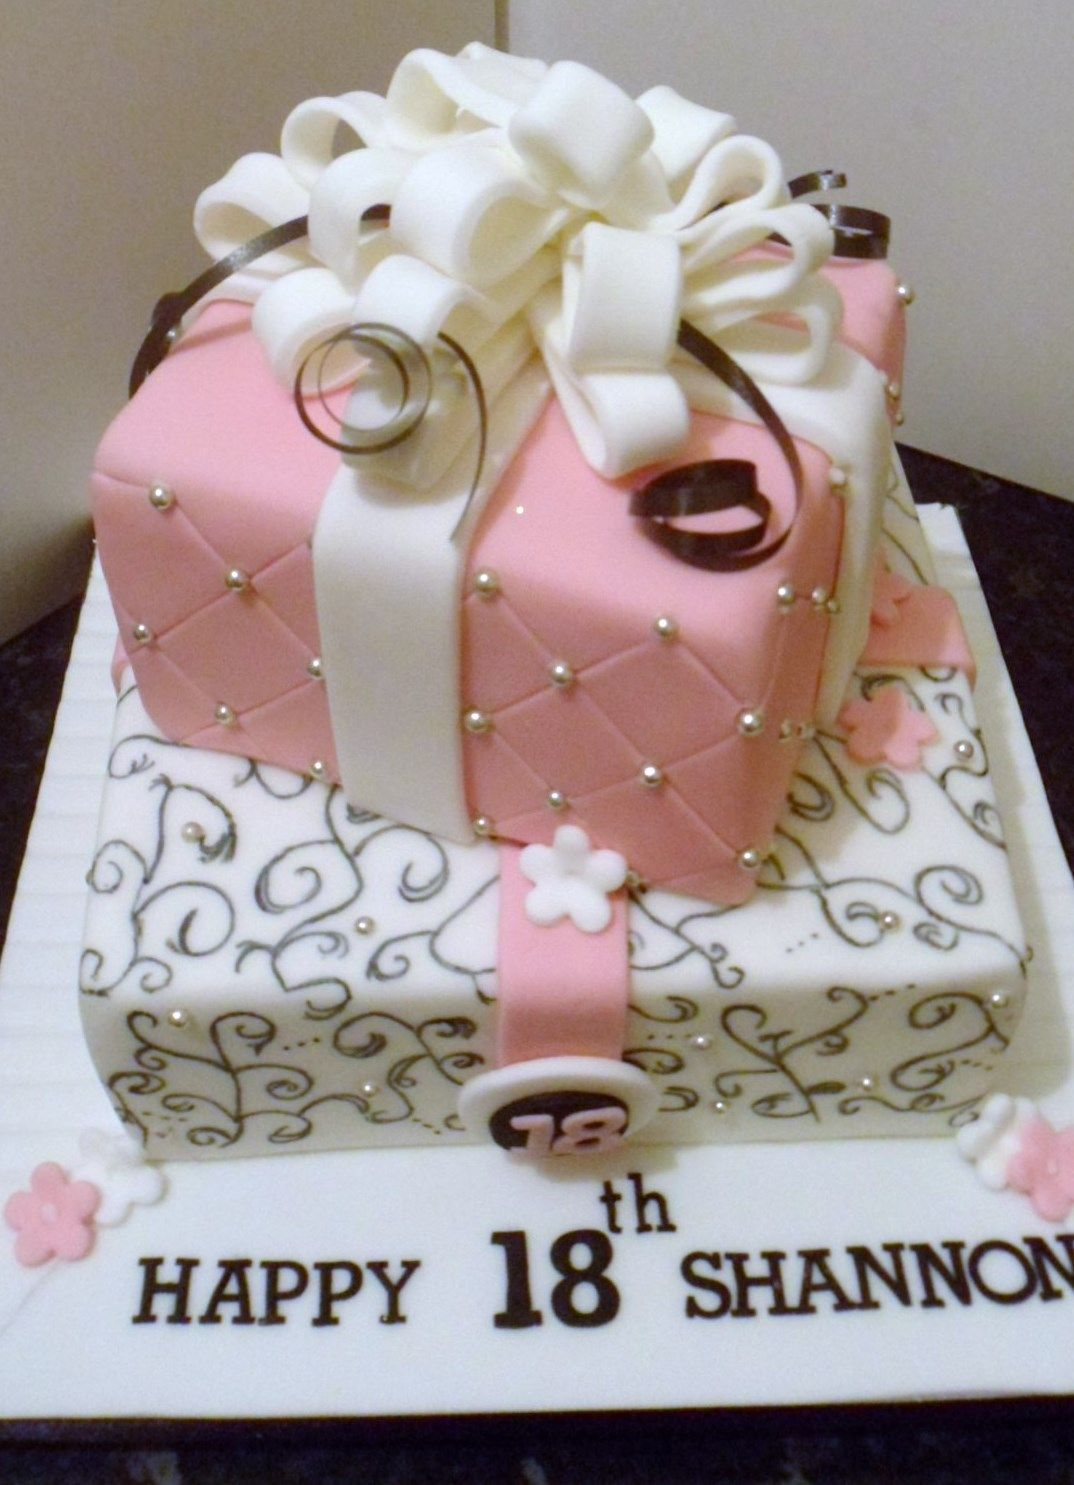 2 Tier Cake Suitable For Several Occasions All Design Hand Painted On The Bottom